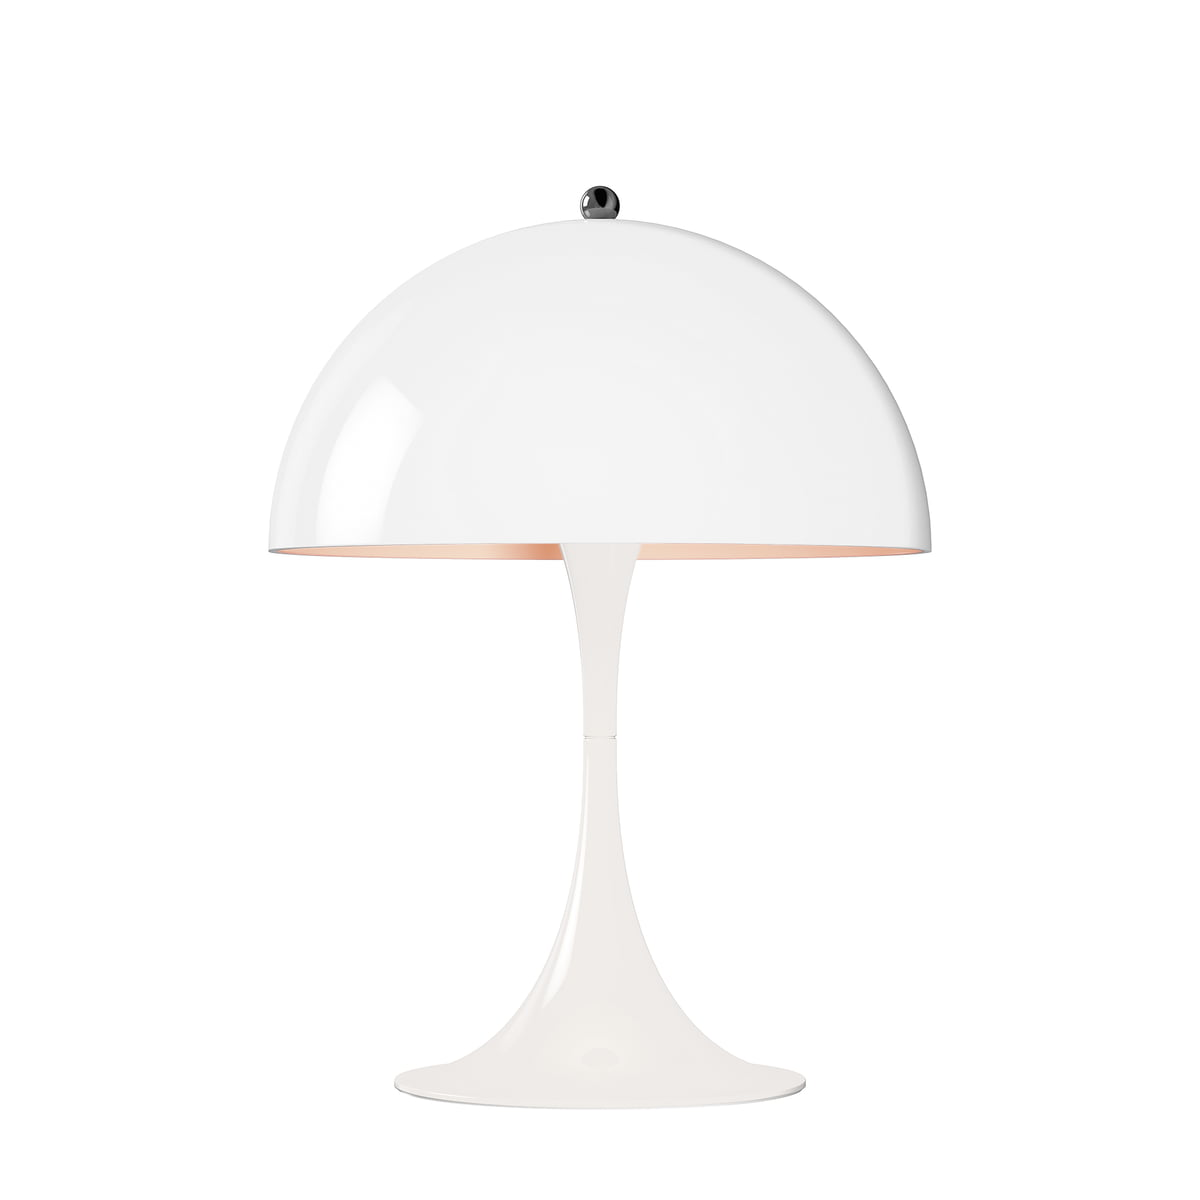 panthella mini table lamp by louis poulsen. Black Bedroom Furniture Sets. Home Design Ideas